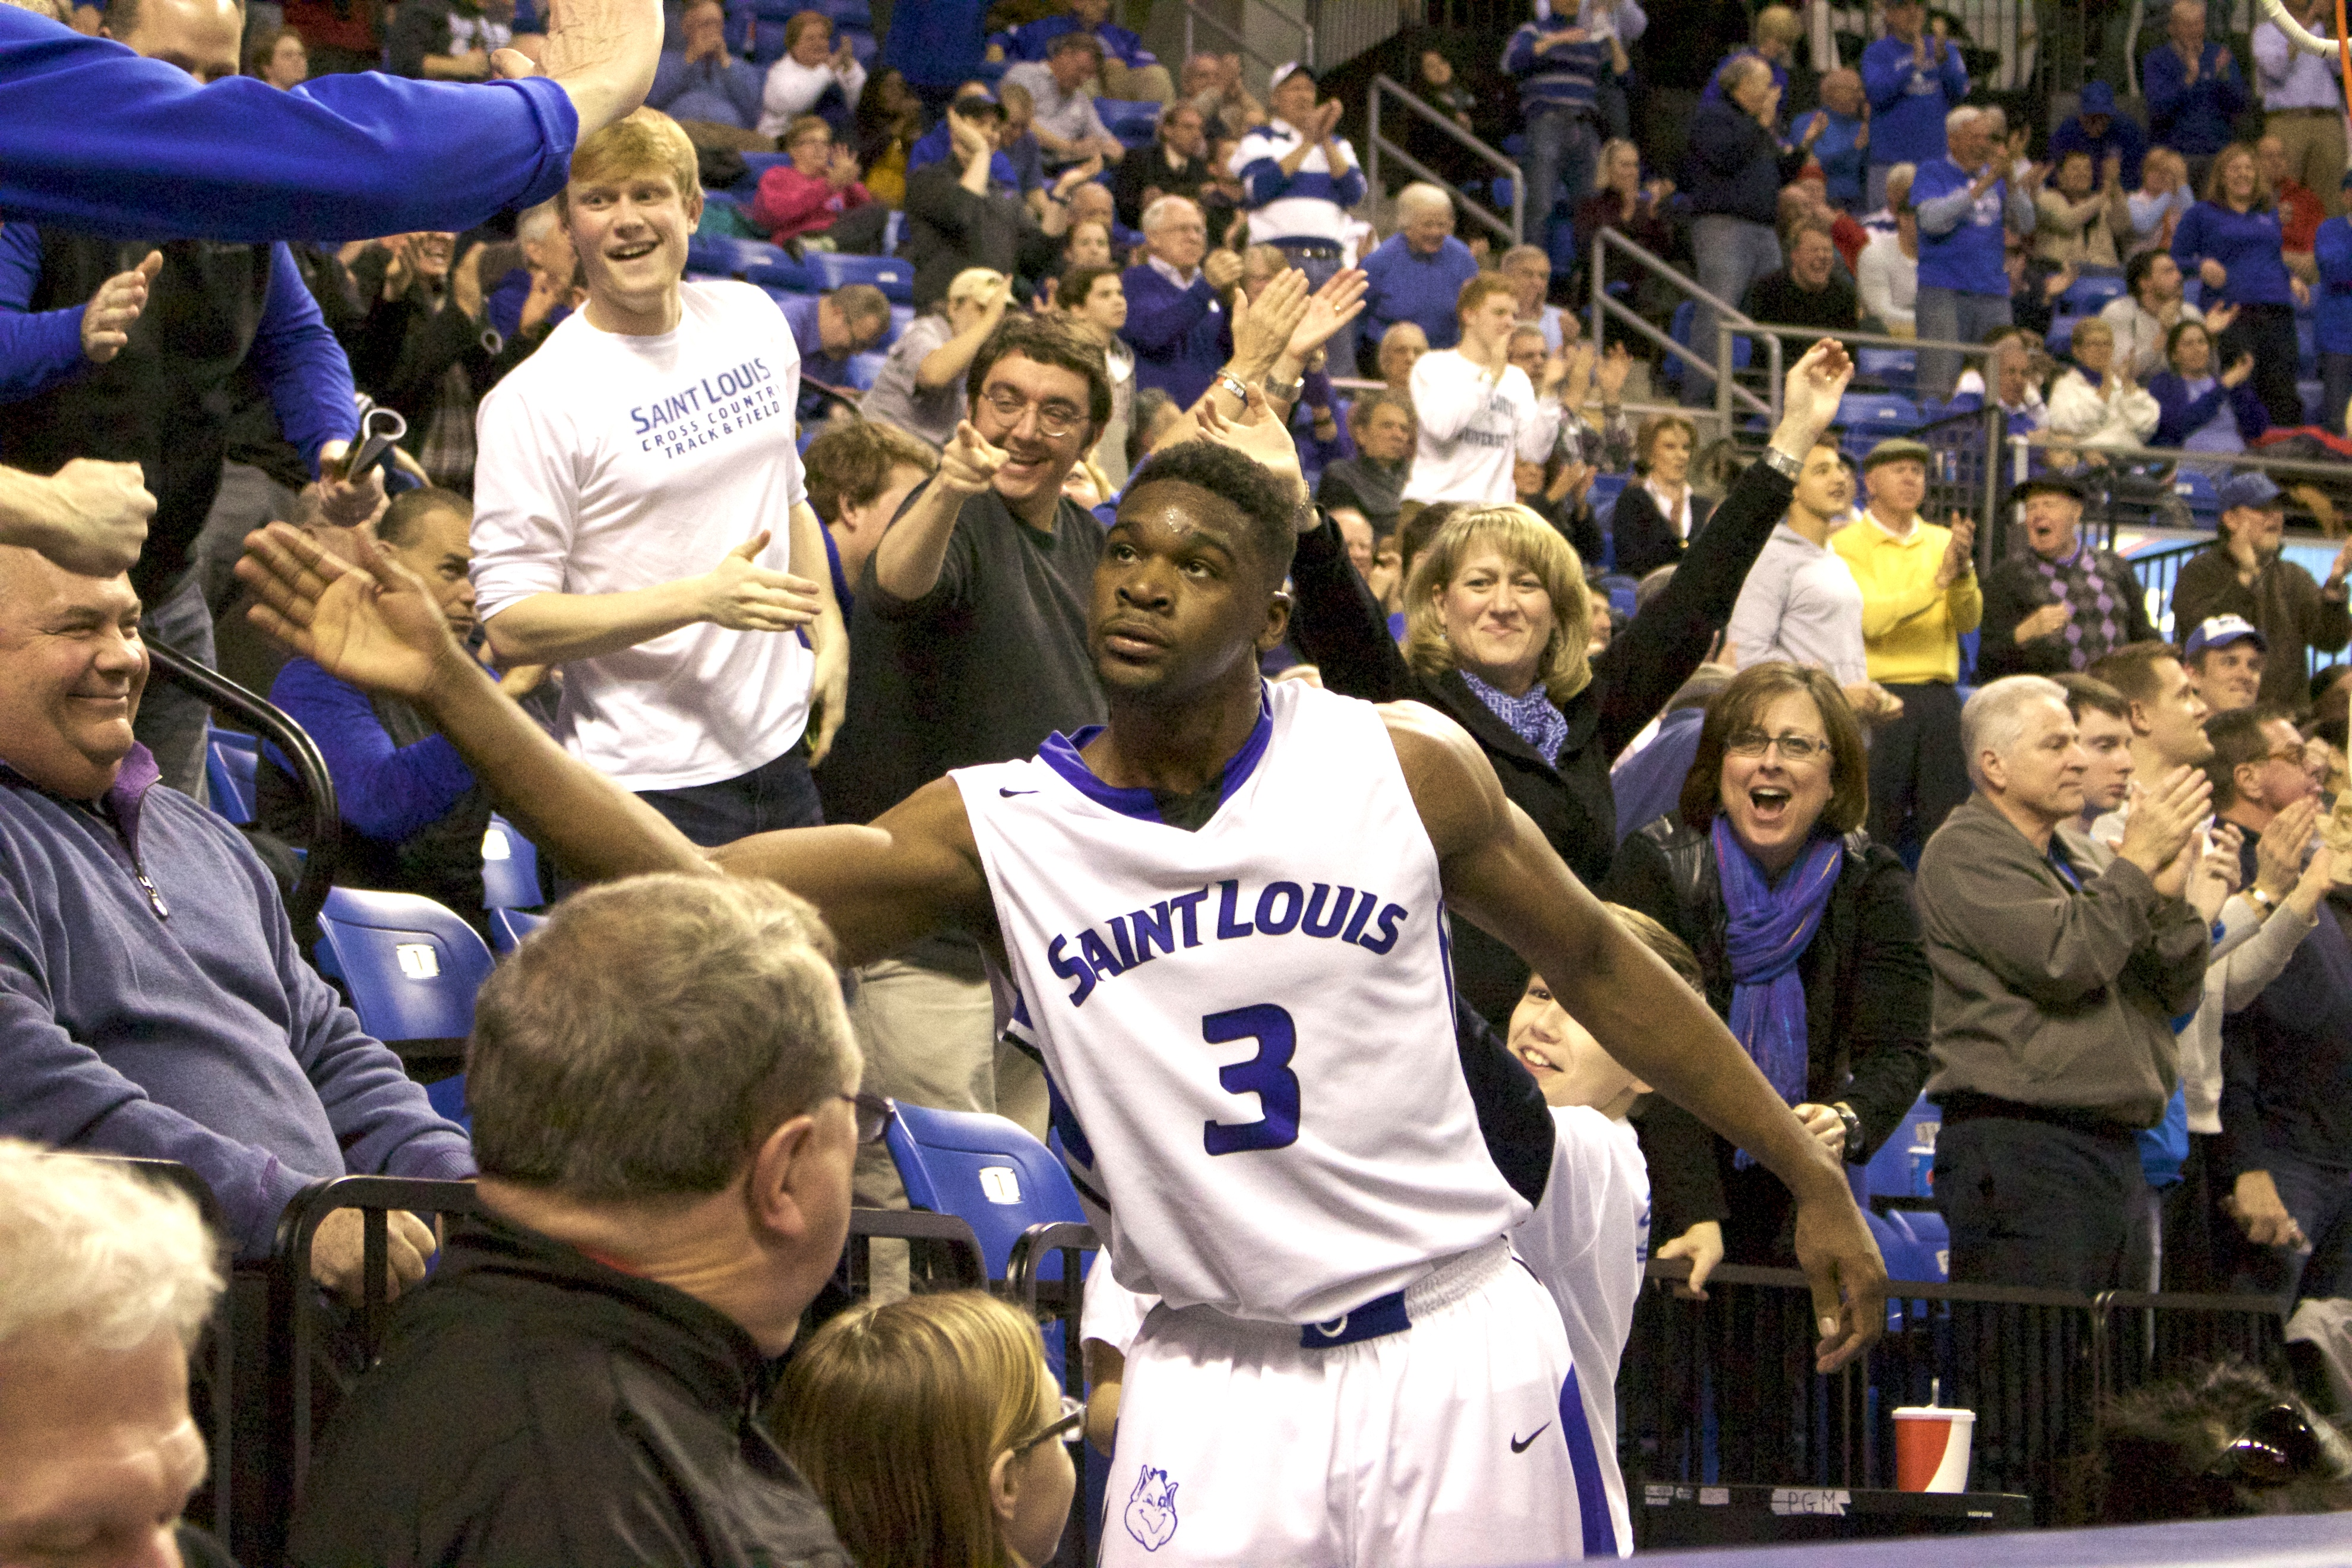 High five: Yacoubou greets a fan after a stellar performance at home against Saint Joseph's, shooting 8-of-10 from the field. Michael DiMaria / Staff Photographer